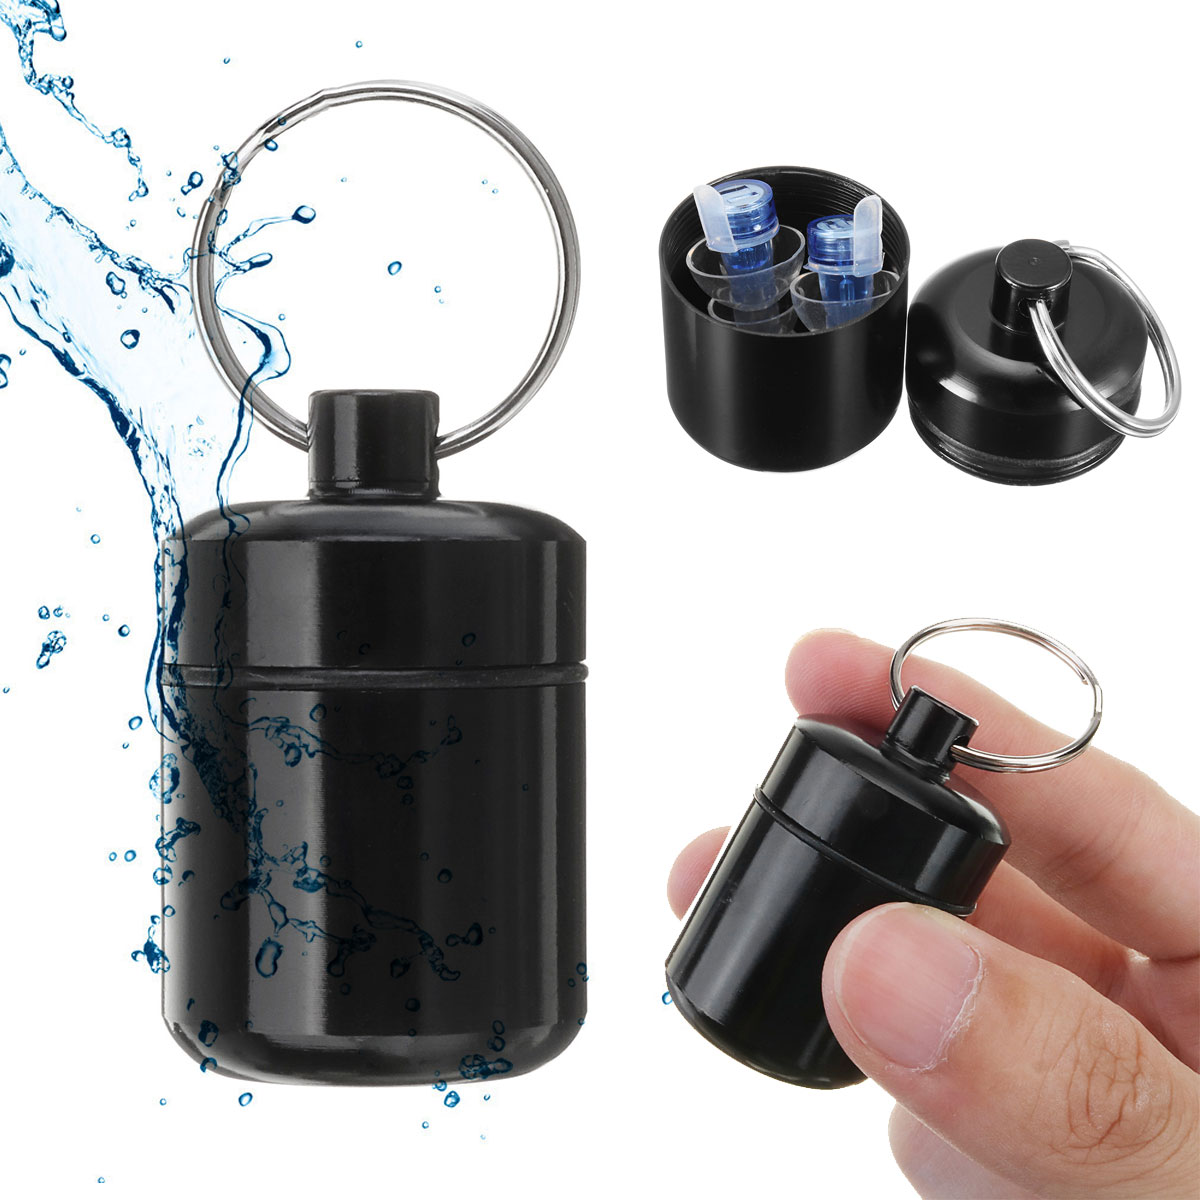 Aluminium Alloy Black Bottle Case For Silicone Musician Filter Earplugs Noise Canceling Protection Earbud Pill Box Carrying